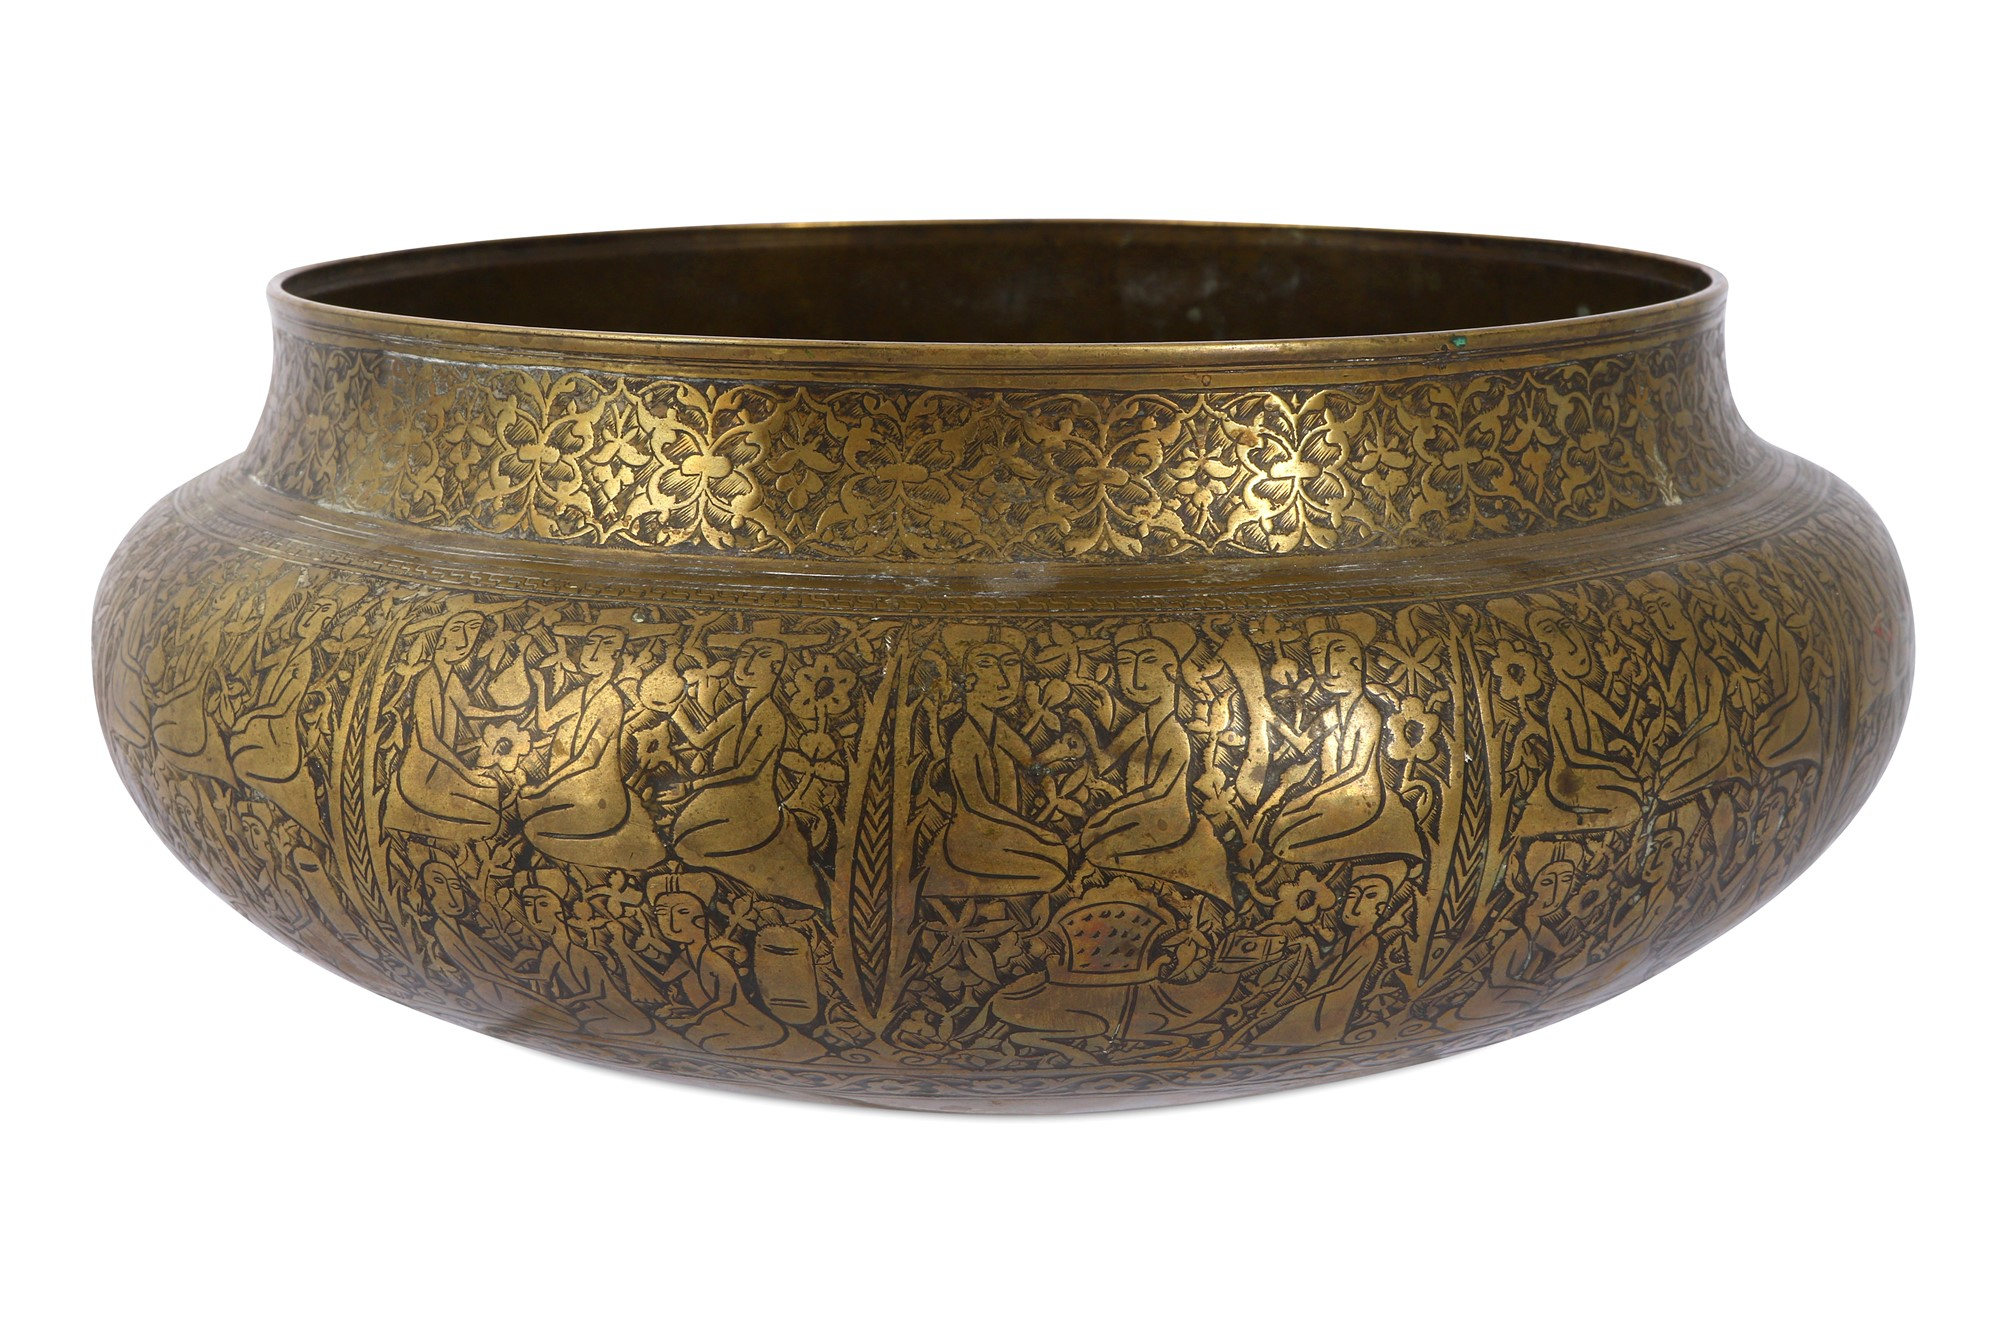 A large Safavid brass bowl with Armenian inscription